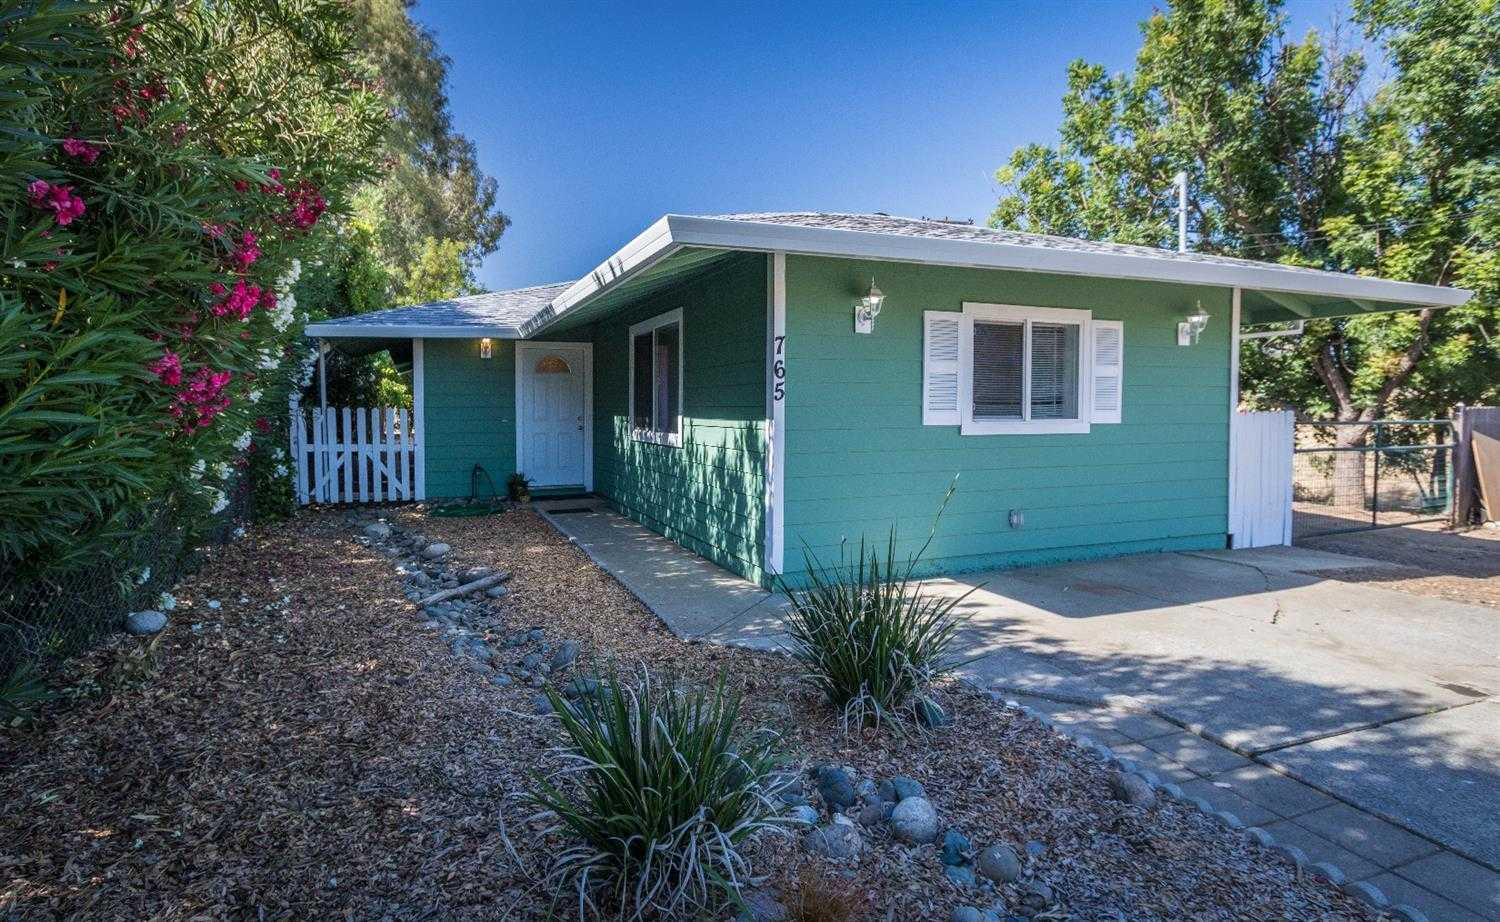 $225,000 - 3Br/2Ba -  for Sale in Oroville